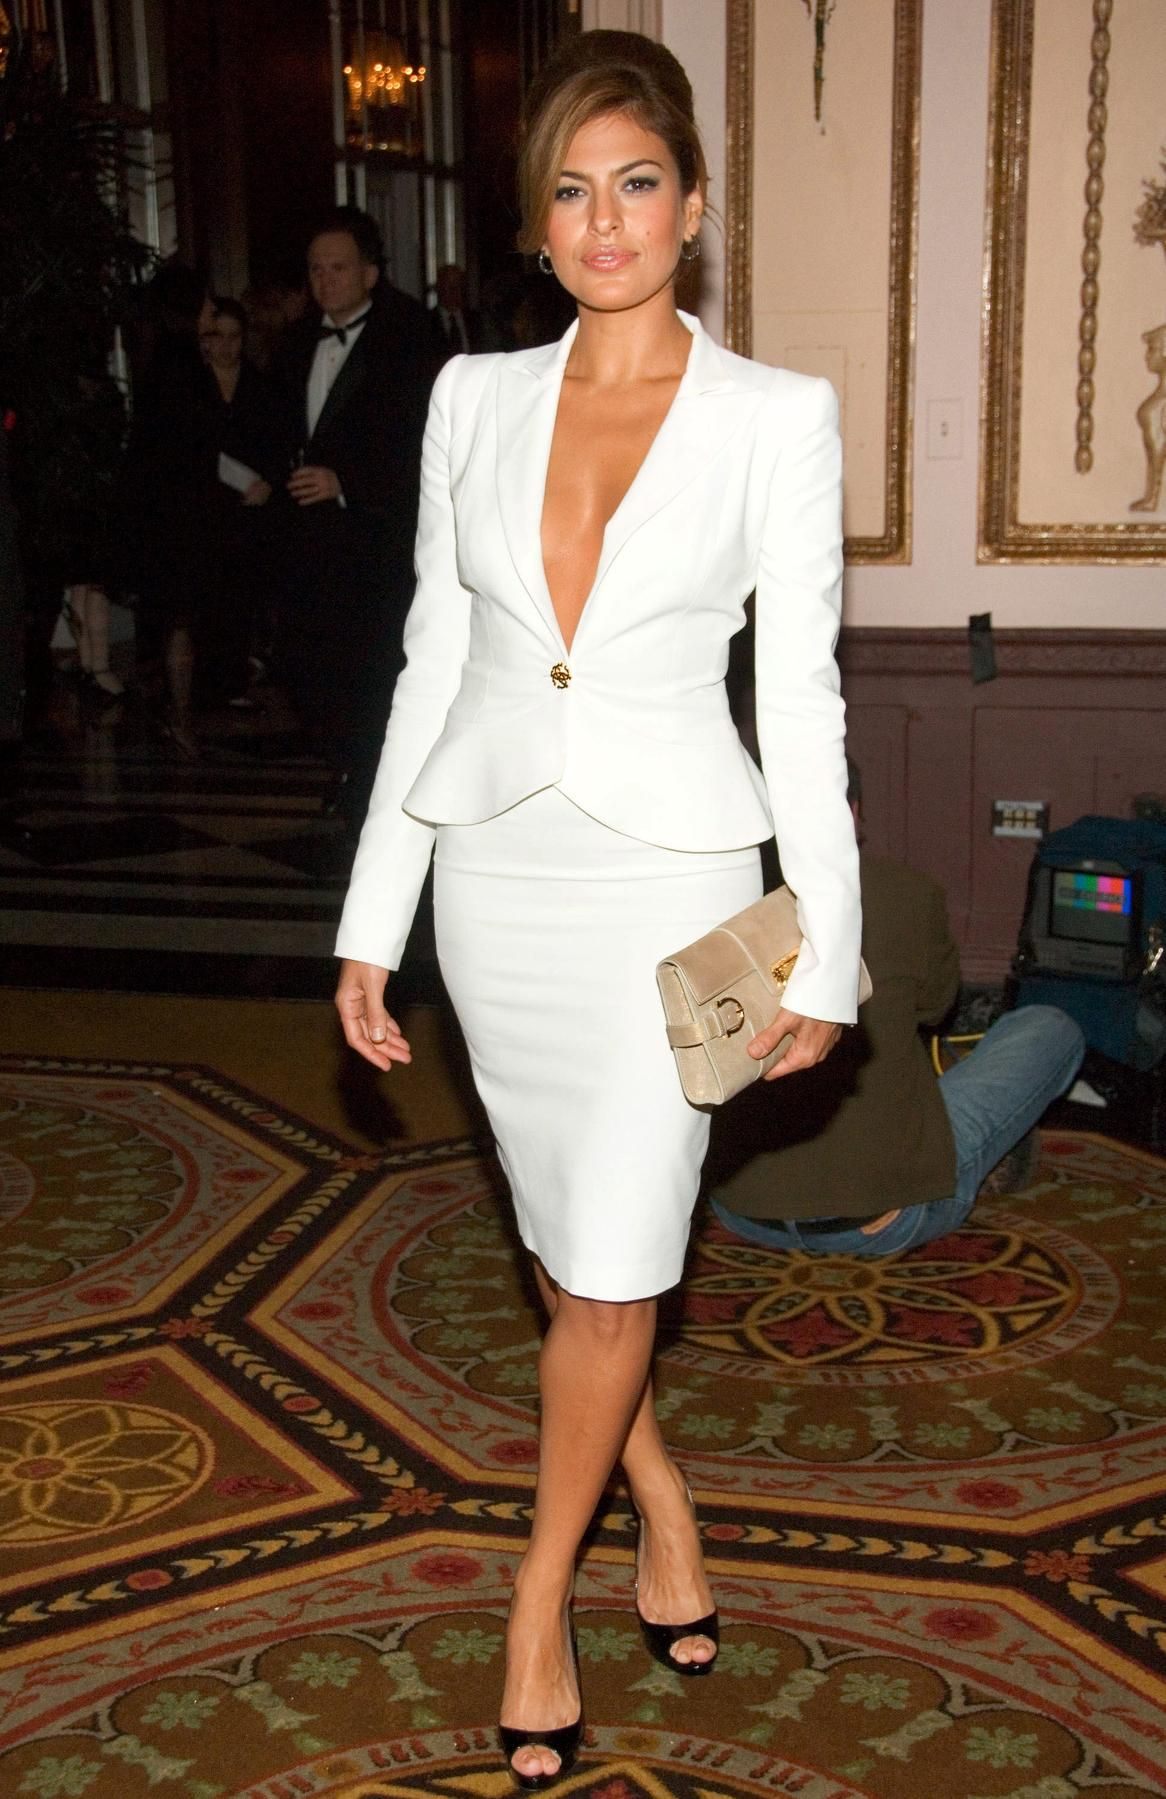 00155a0c56 Eva Mendes in a gorgeous white suit